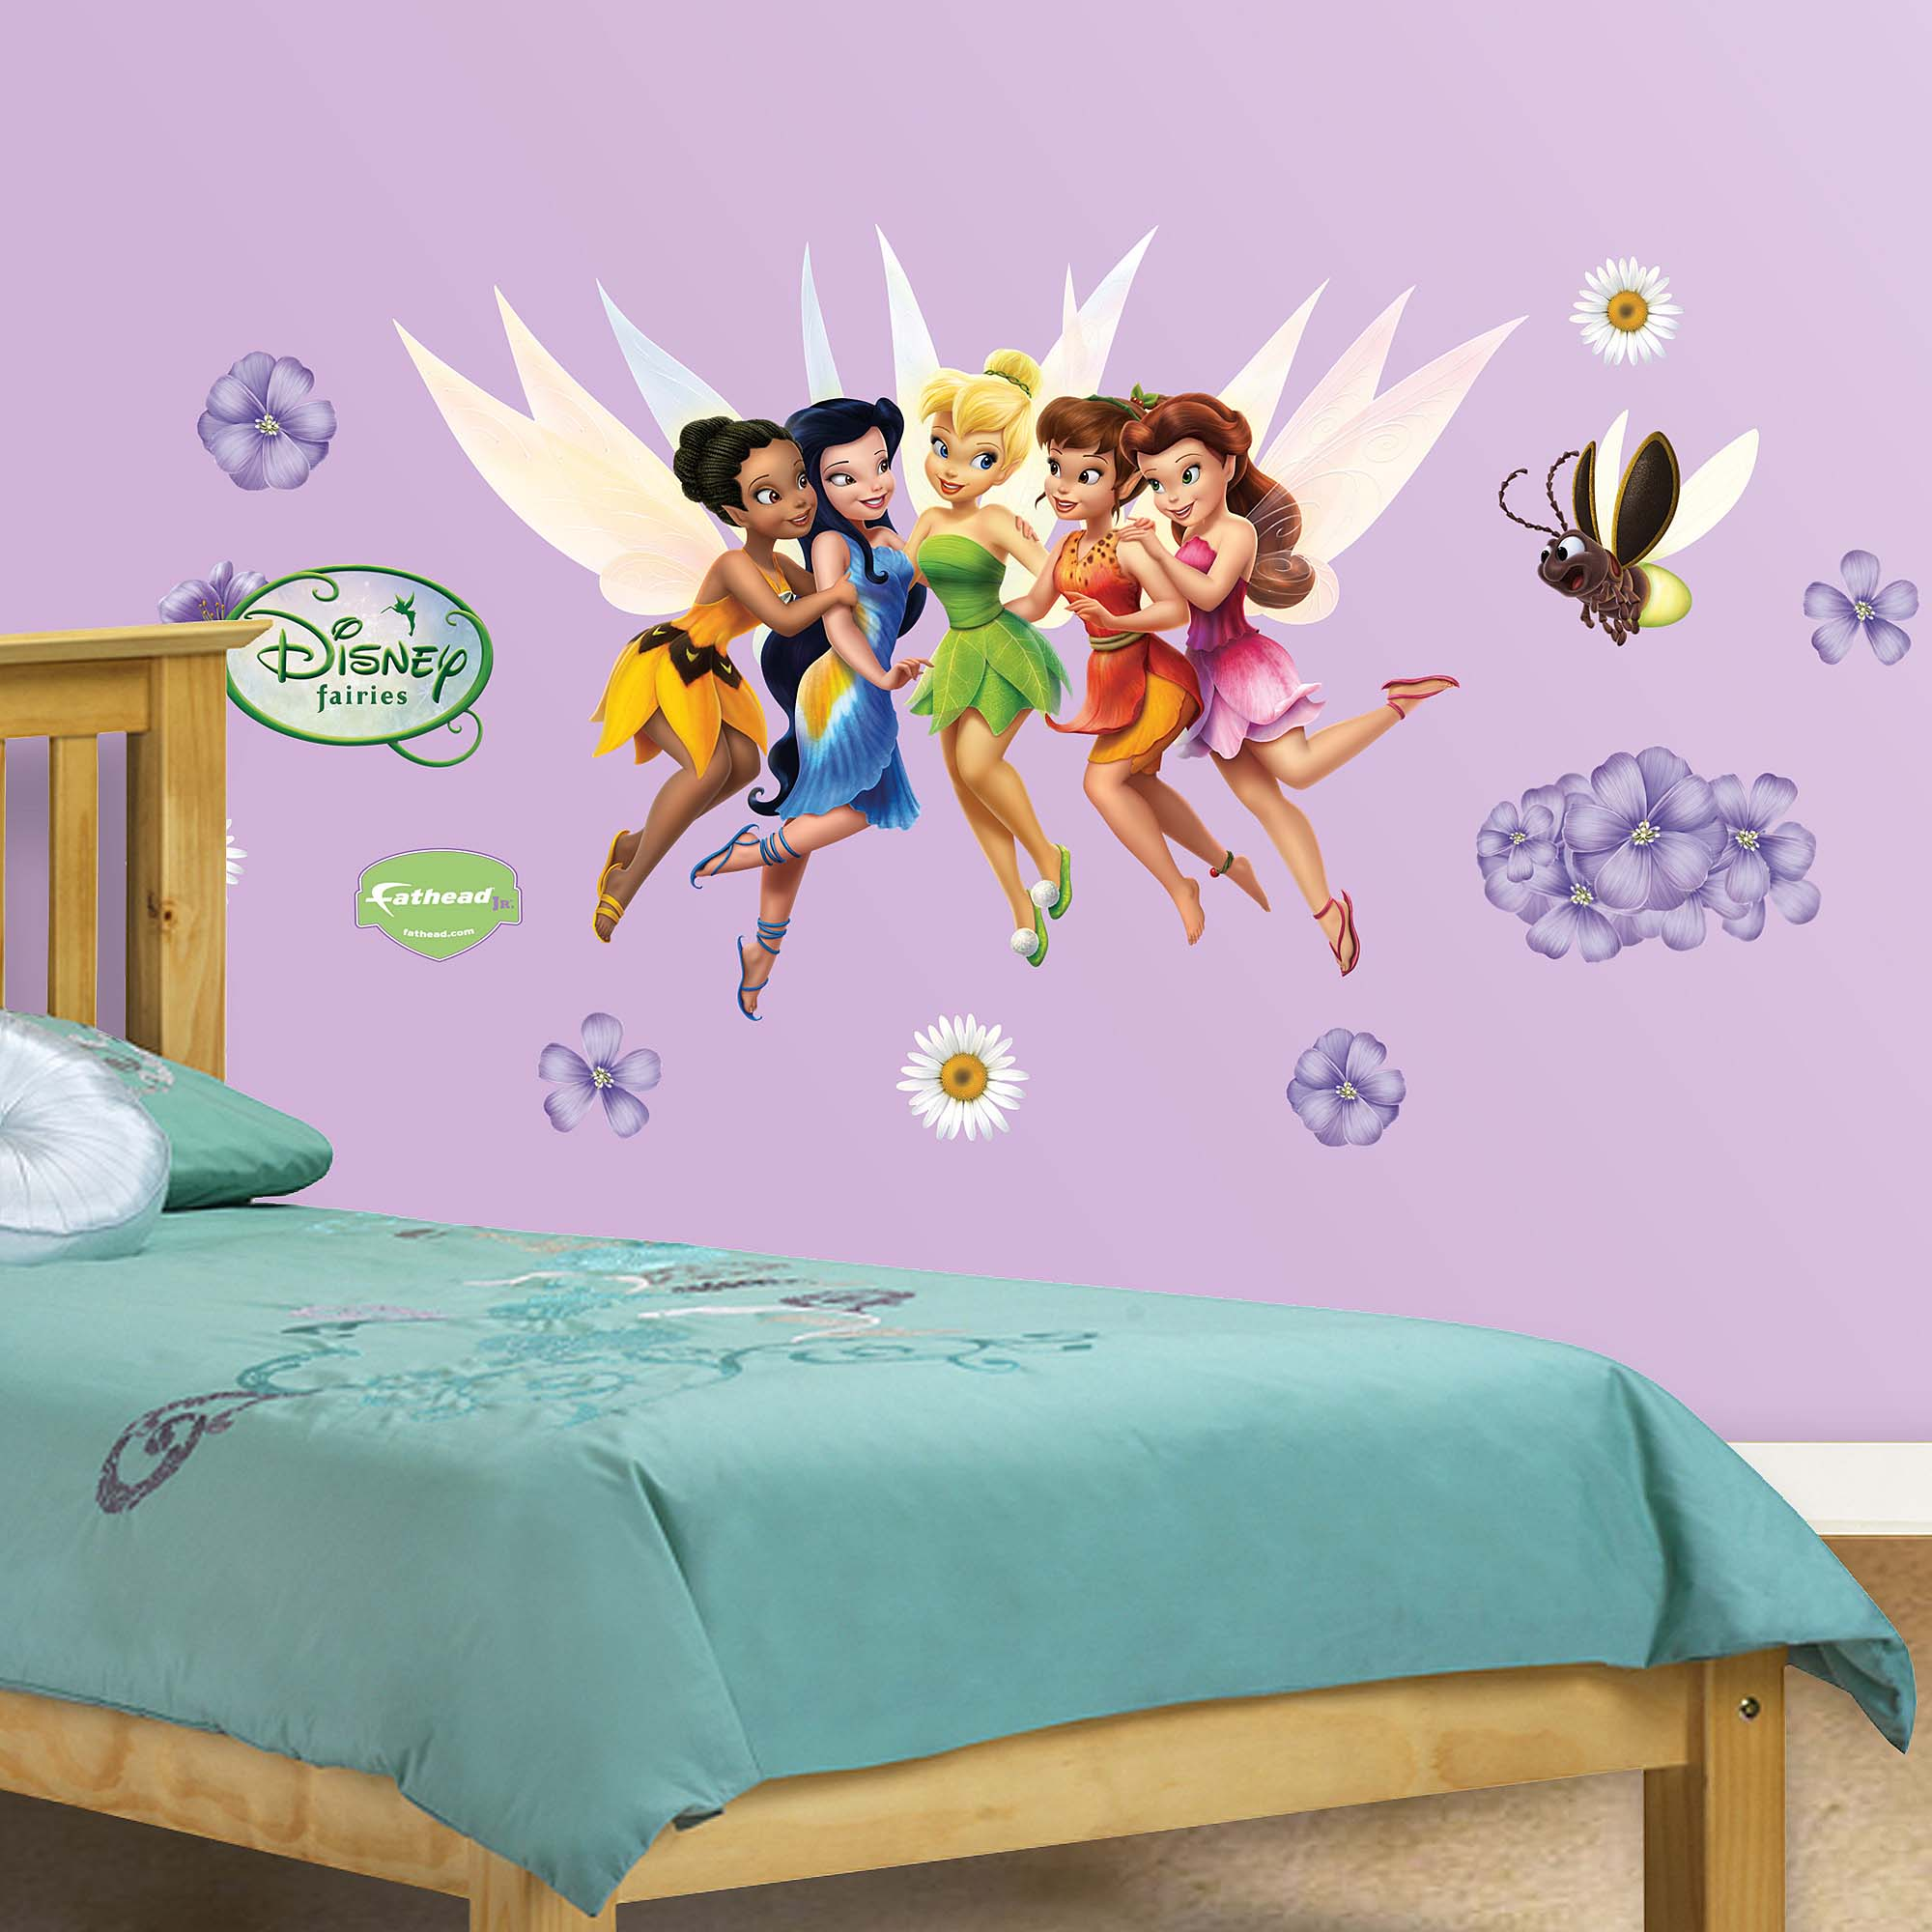 Fathead Junior Disney Fairies